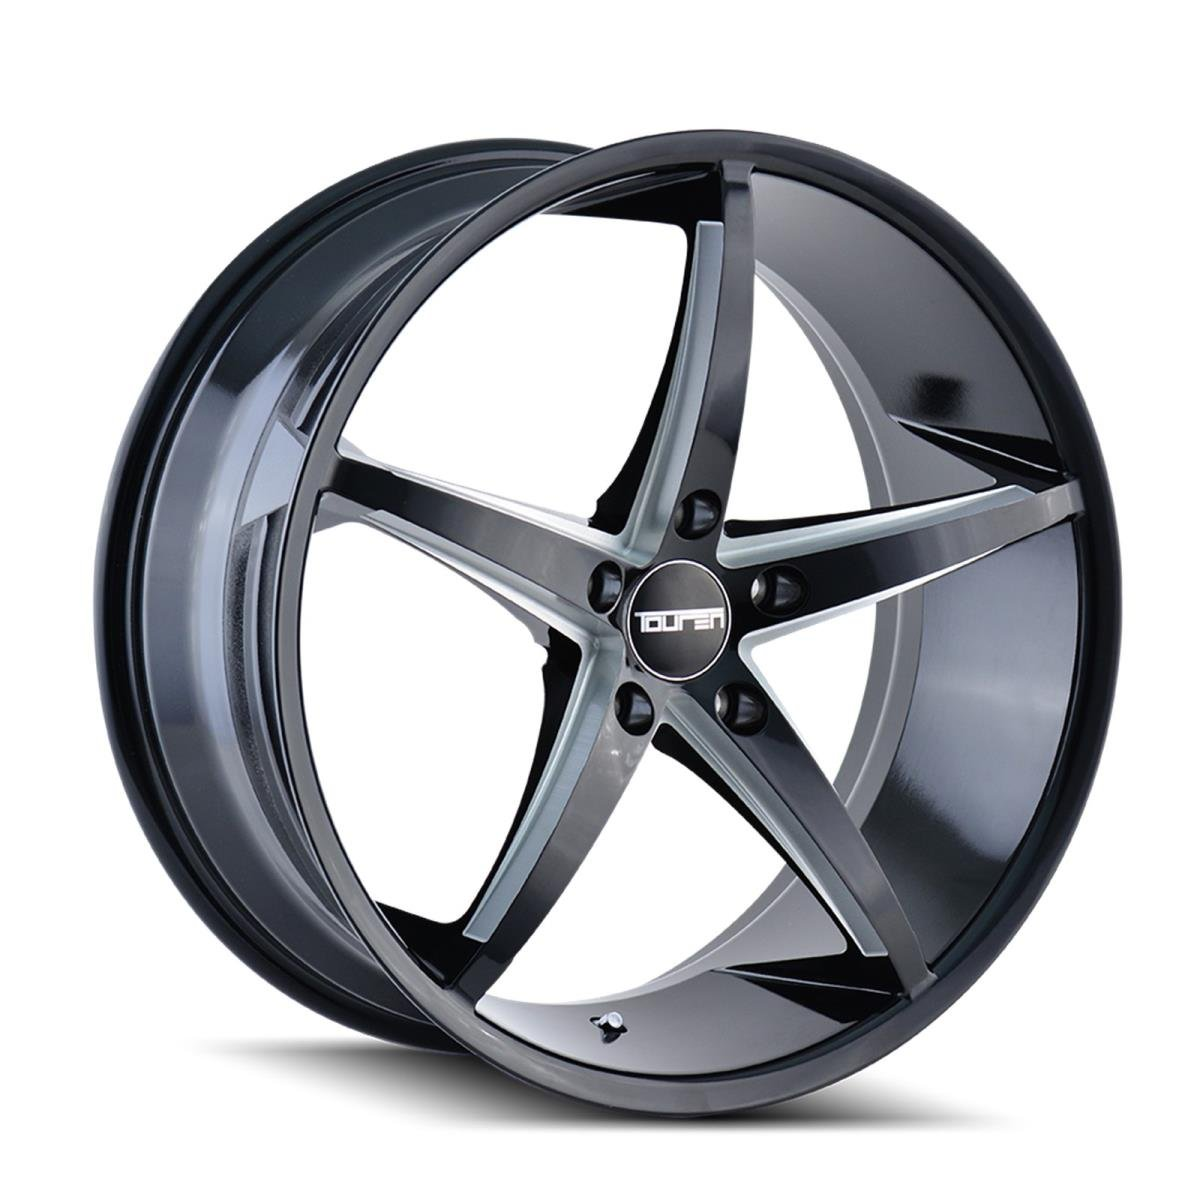 TOUREN TR70 Wheel with Black/Milled Spokes (17 x 7.5 inches /5 x 72 mm, 40 mm Offset) The Wheel Group 3270-7744B